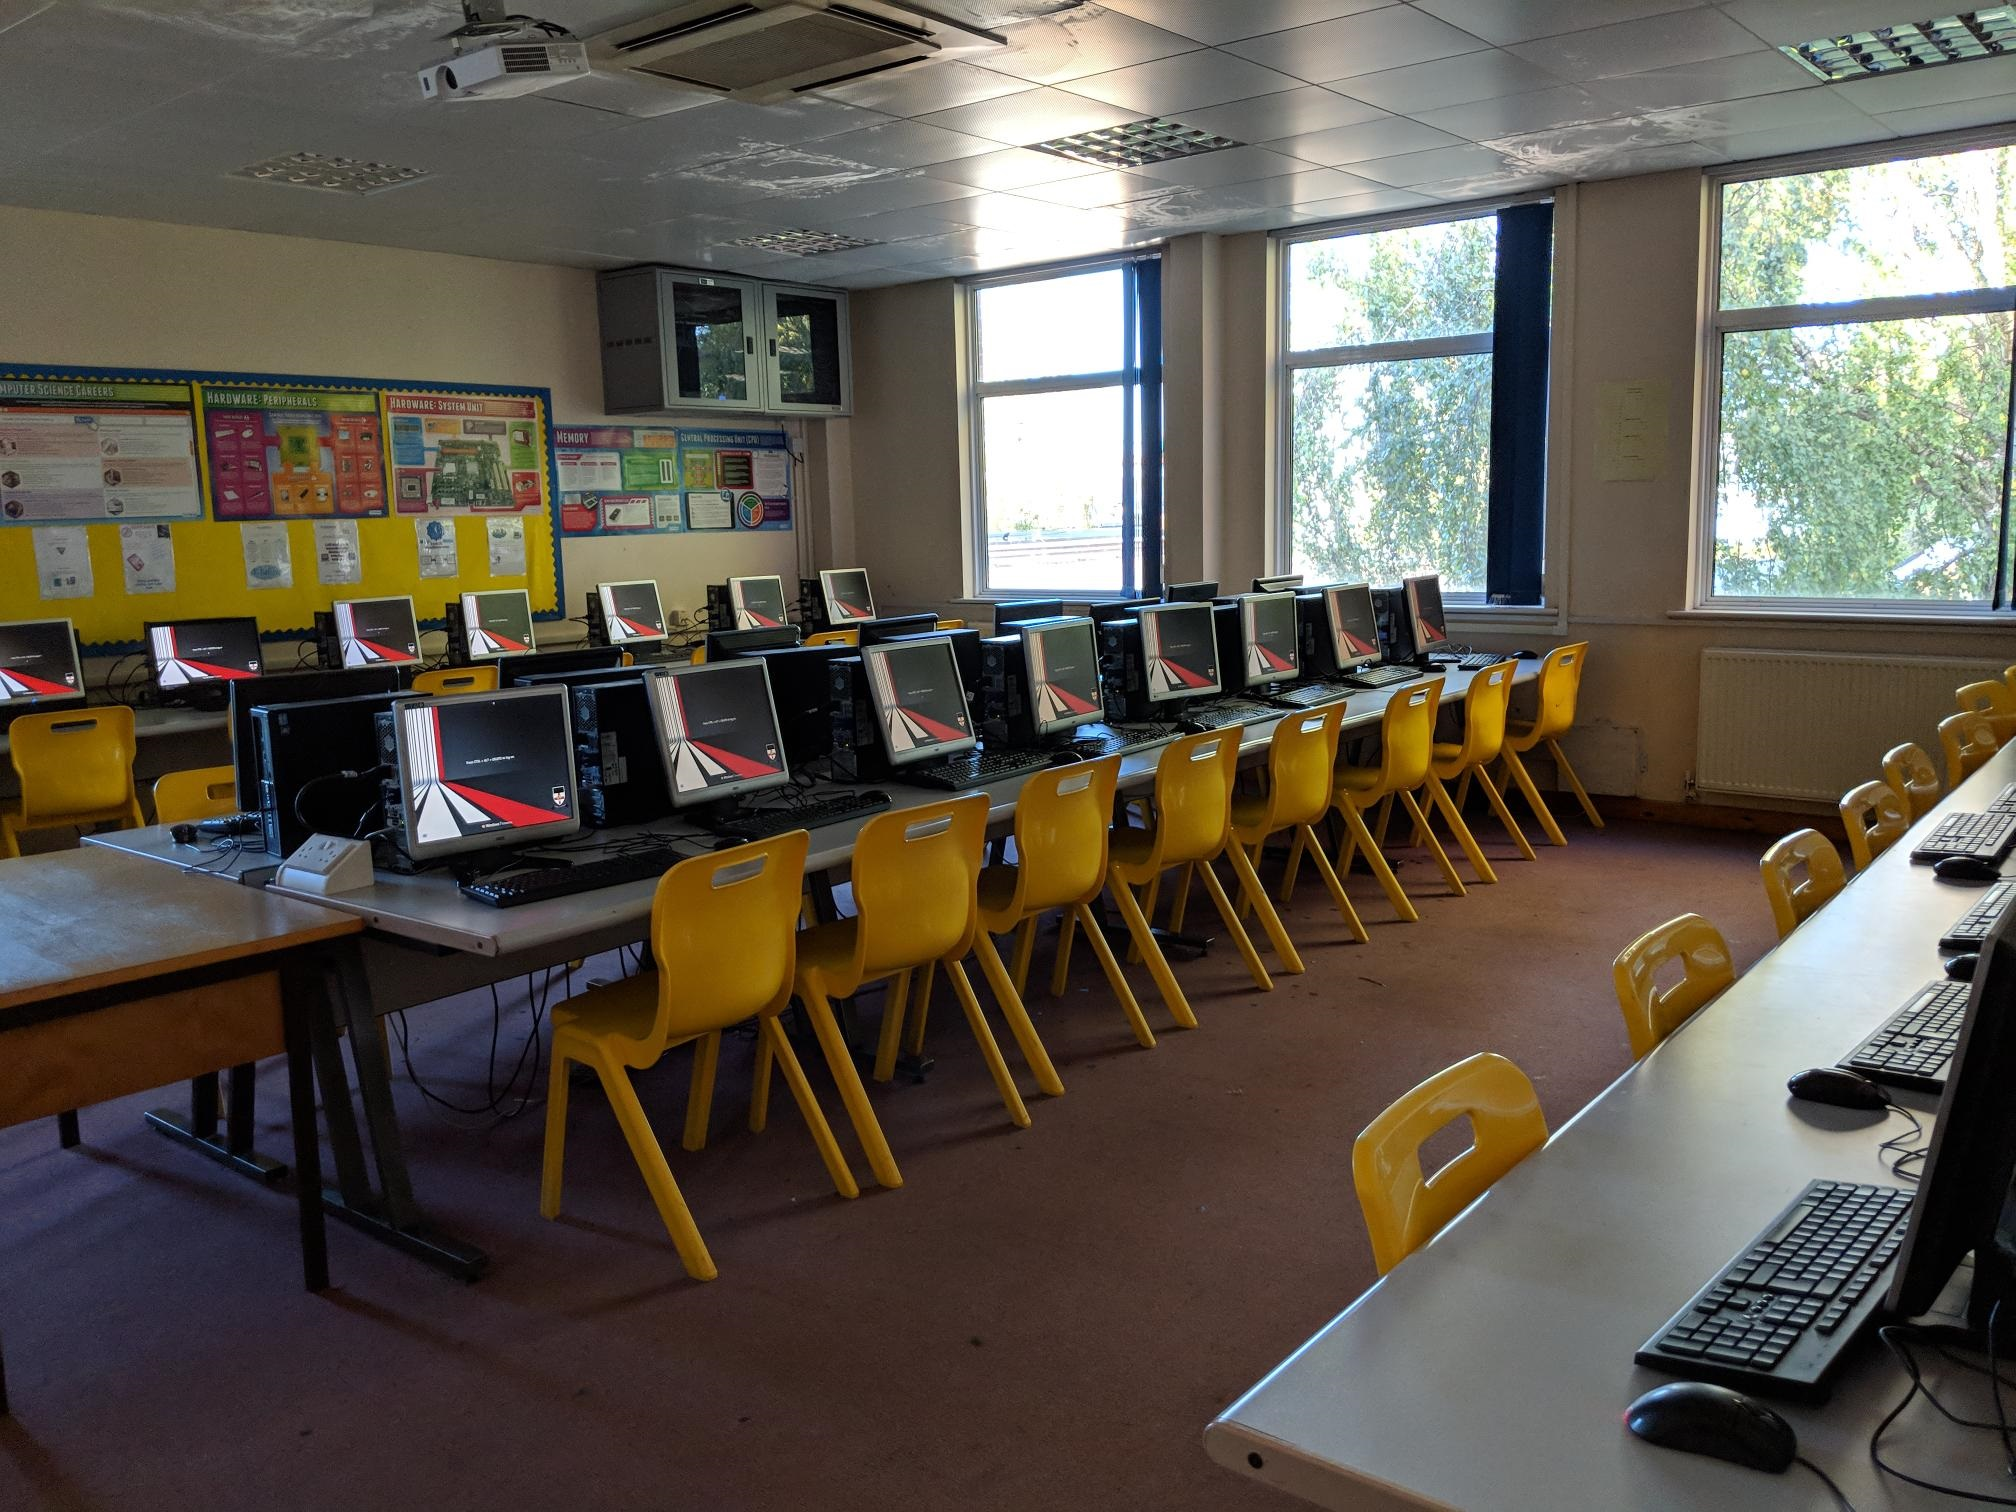 A computer lab at the Knights Templar School